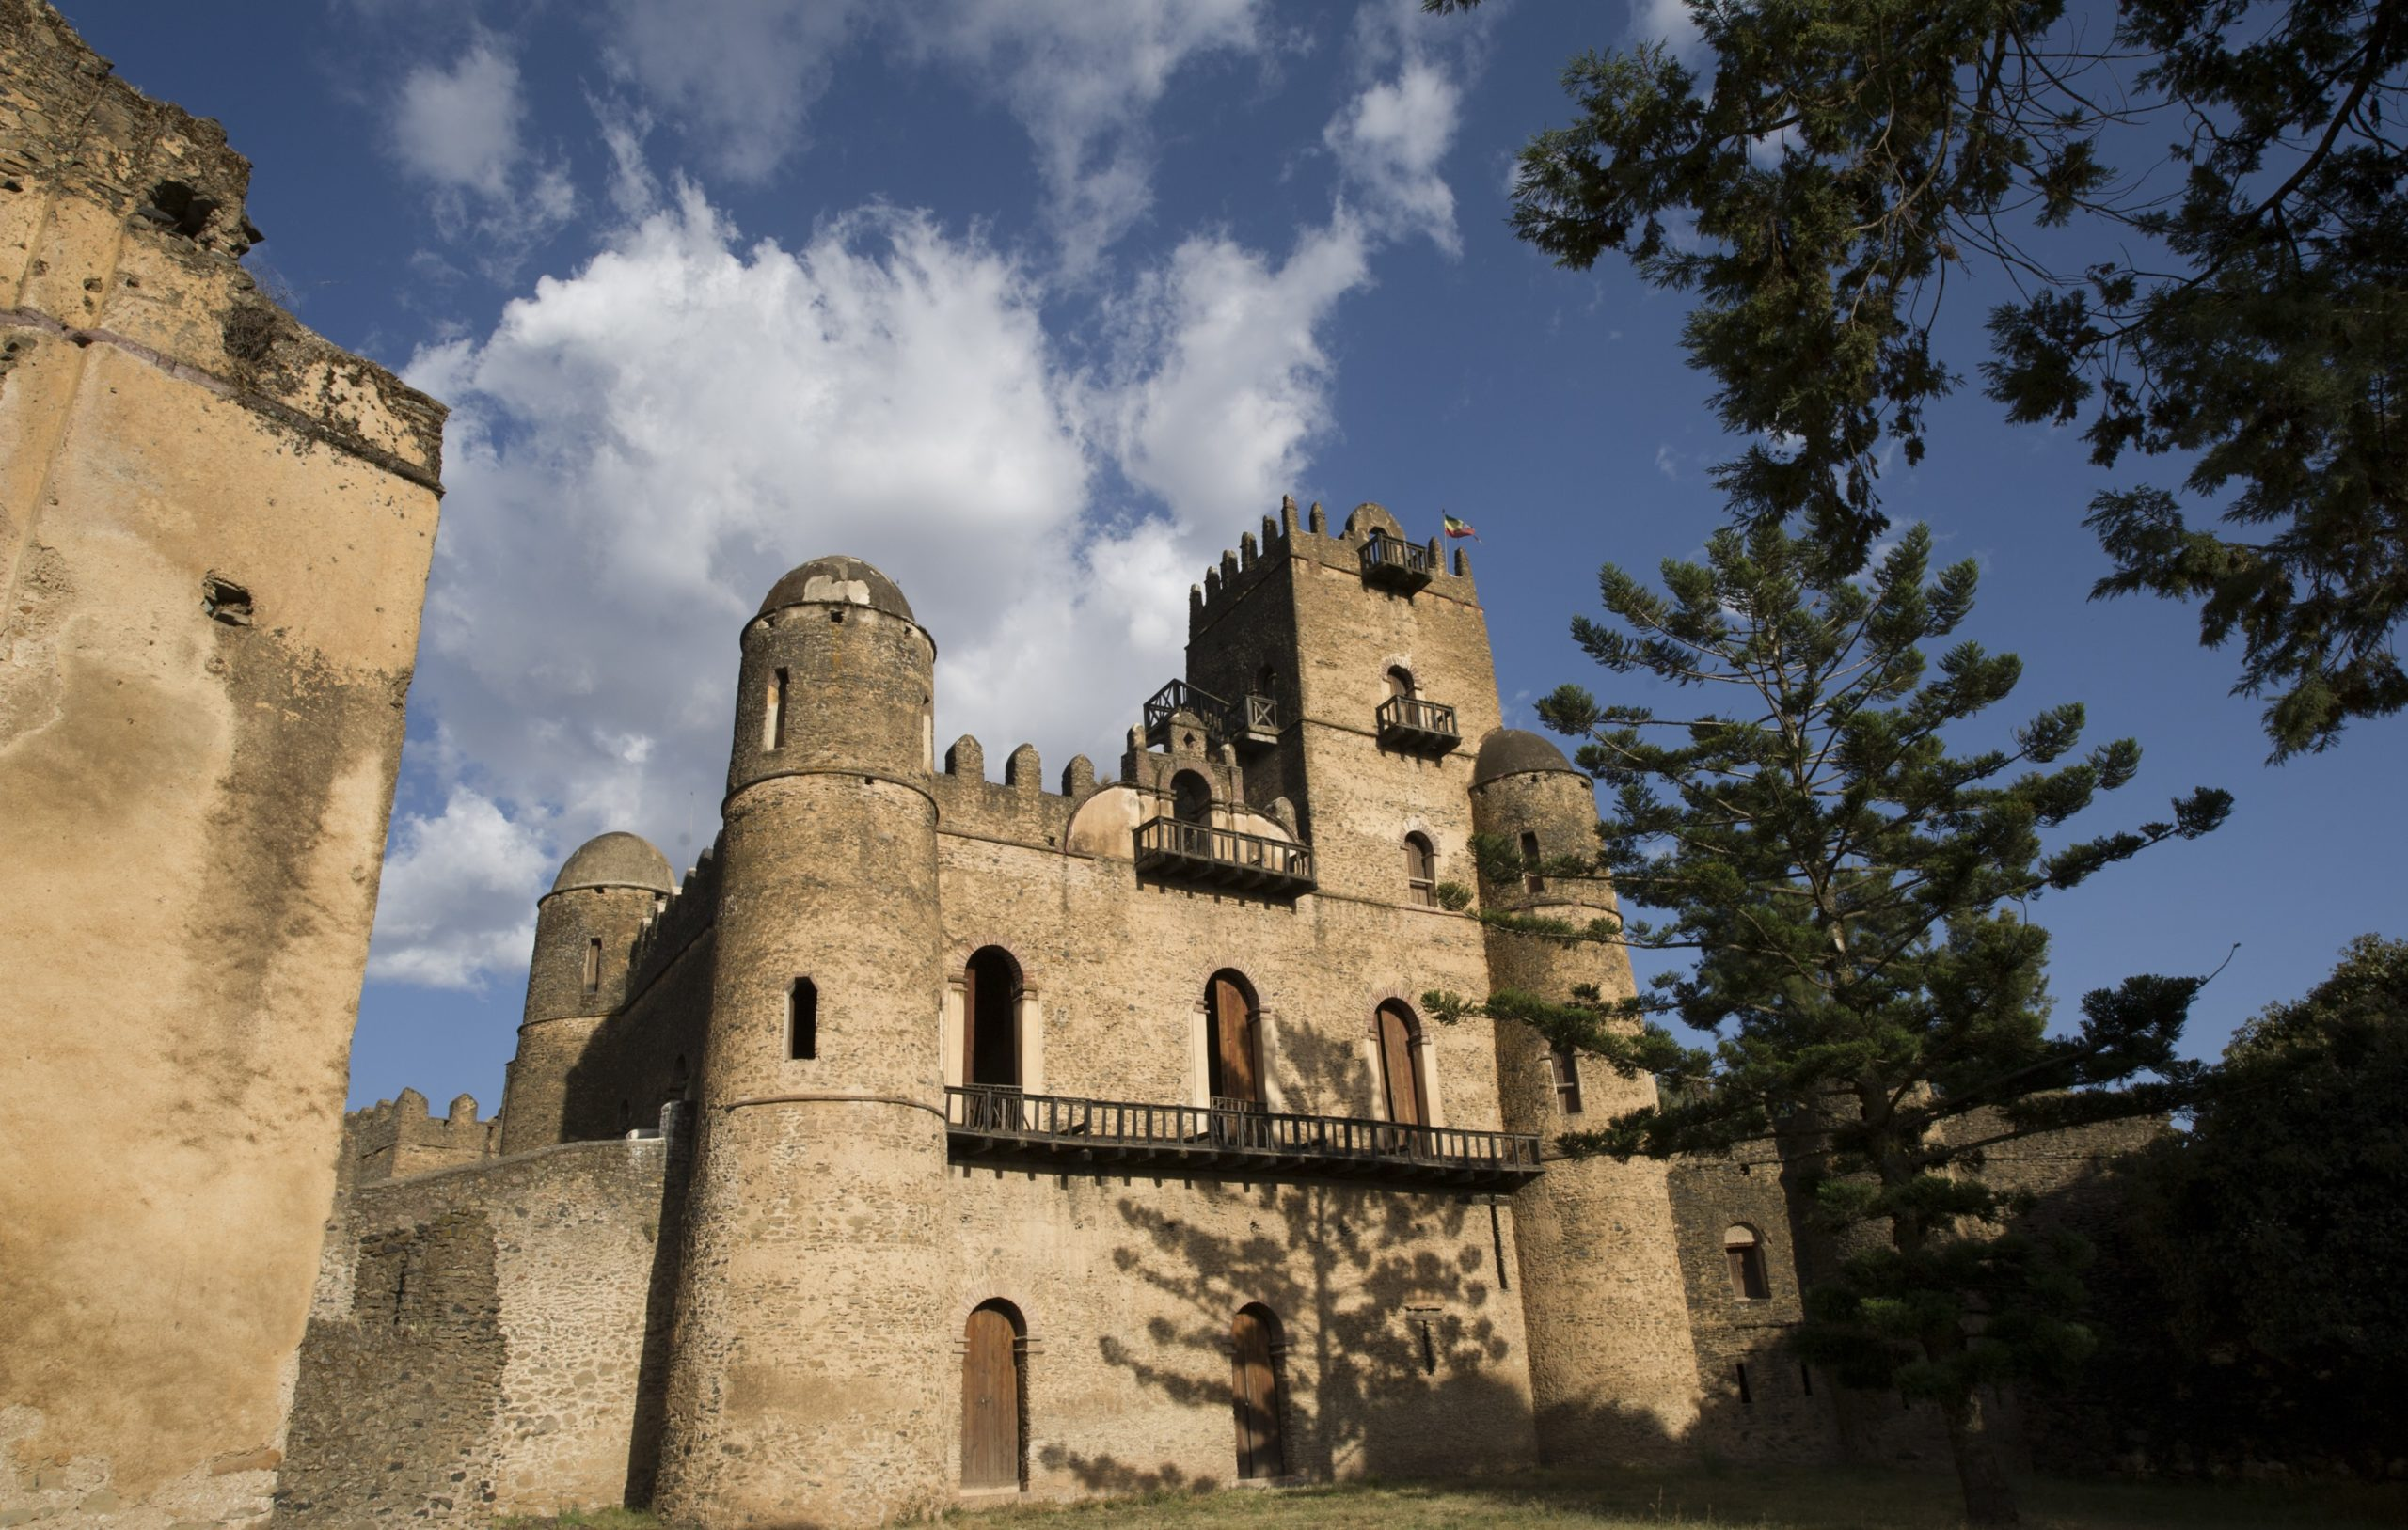 middle age castles of the Fasilidas dynasty in Gondar